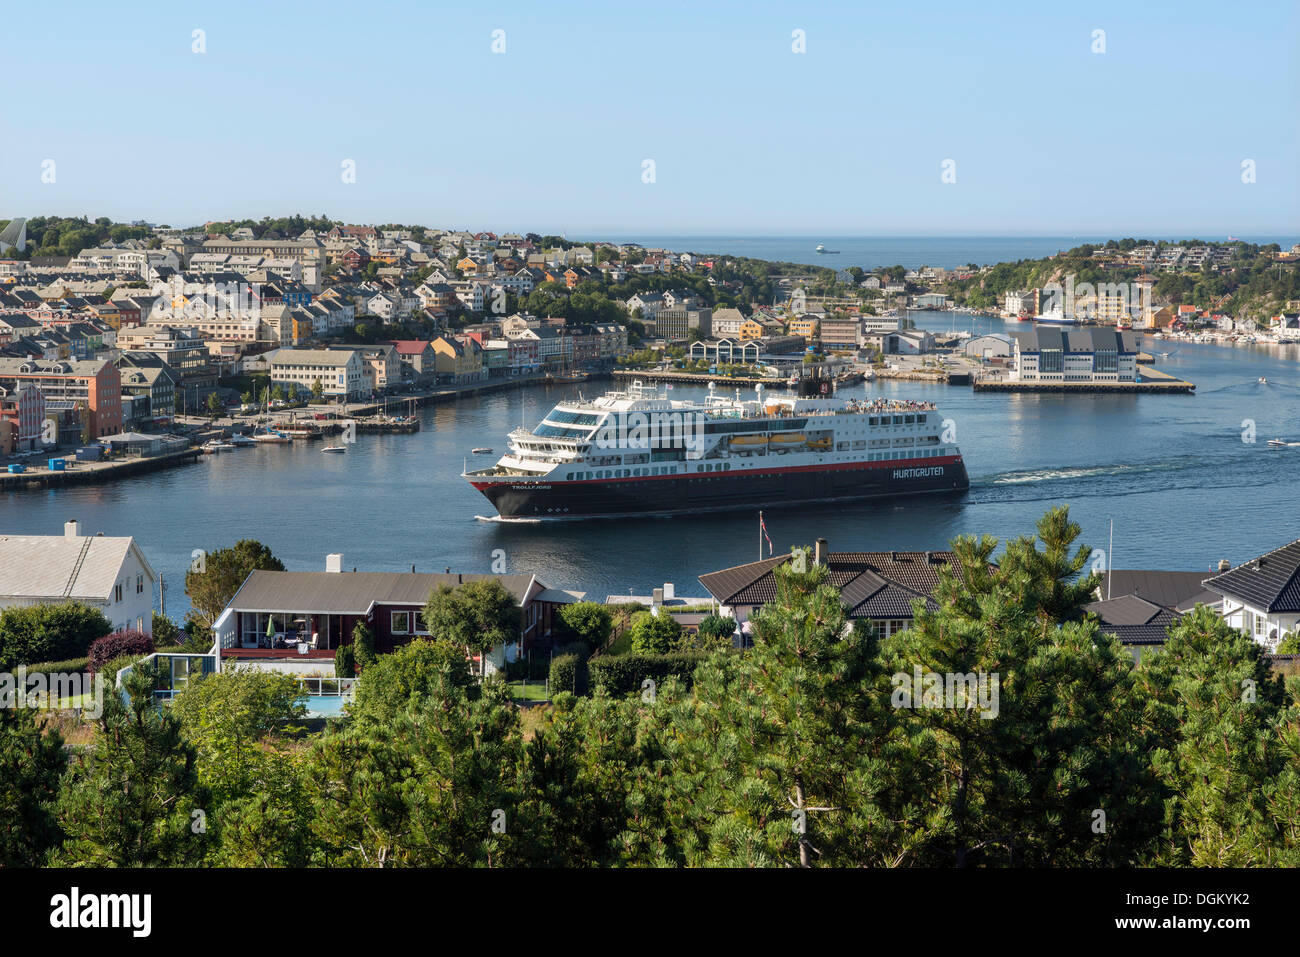 Cityscape with the harbour as a cruise ship is departing, Kristiansund, Møre og Romsdal, Western Norway, Norway - Stock Image